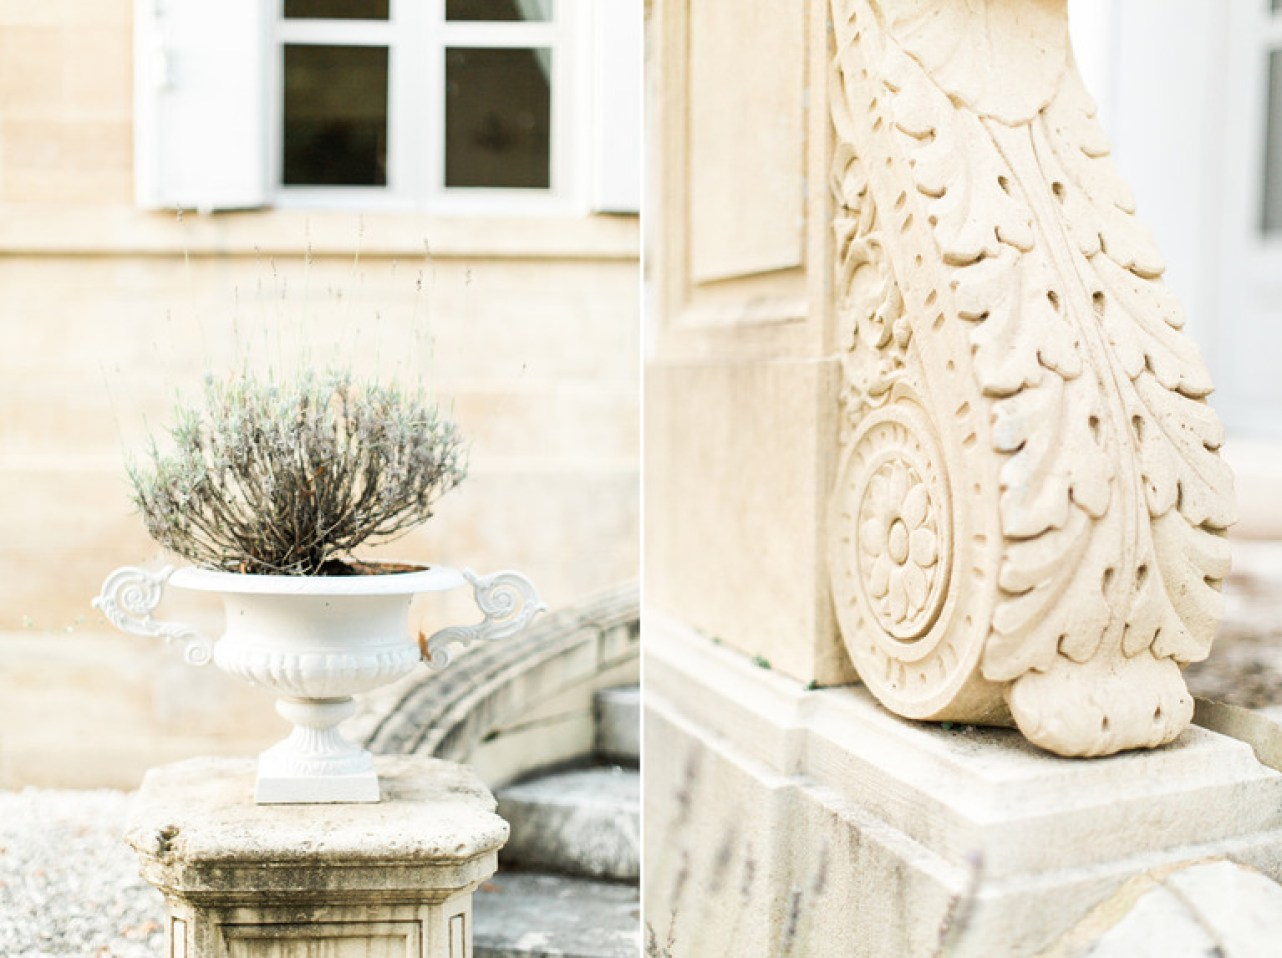 Outside Details at Chateau la Durantie in France